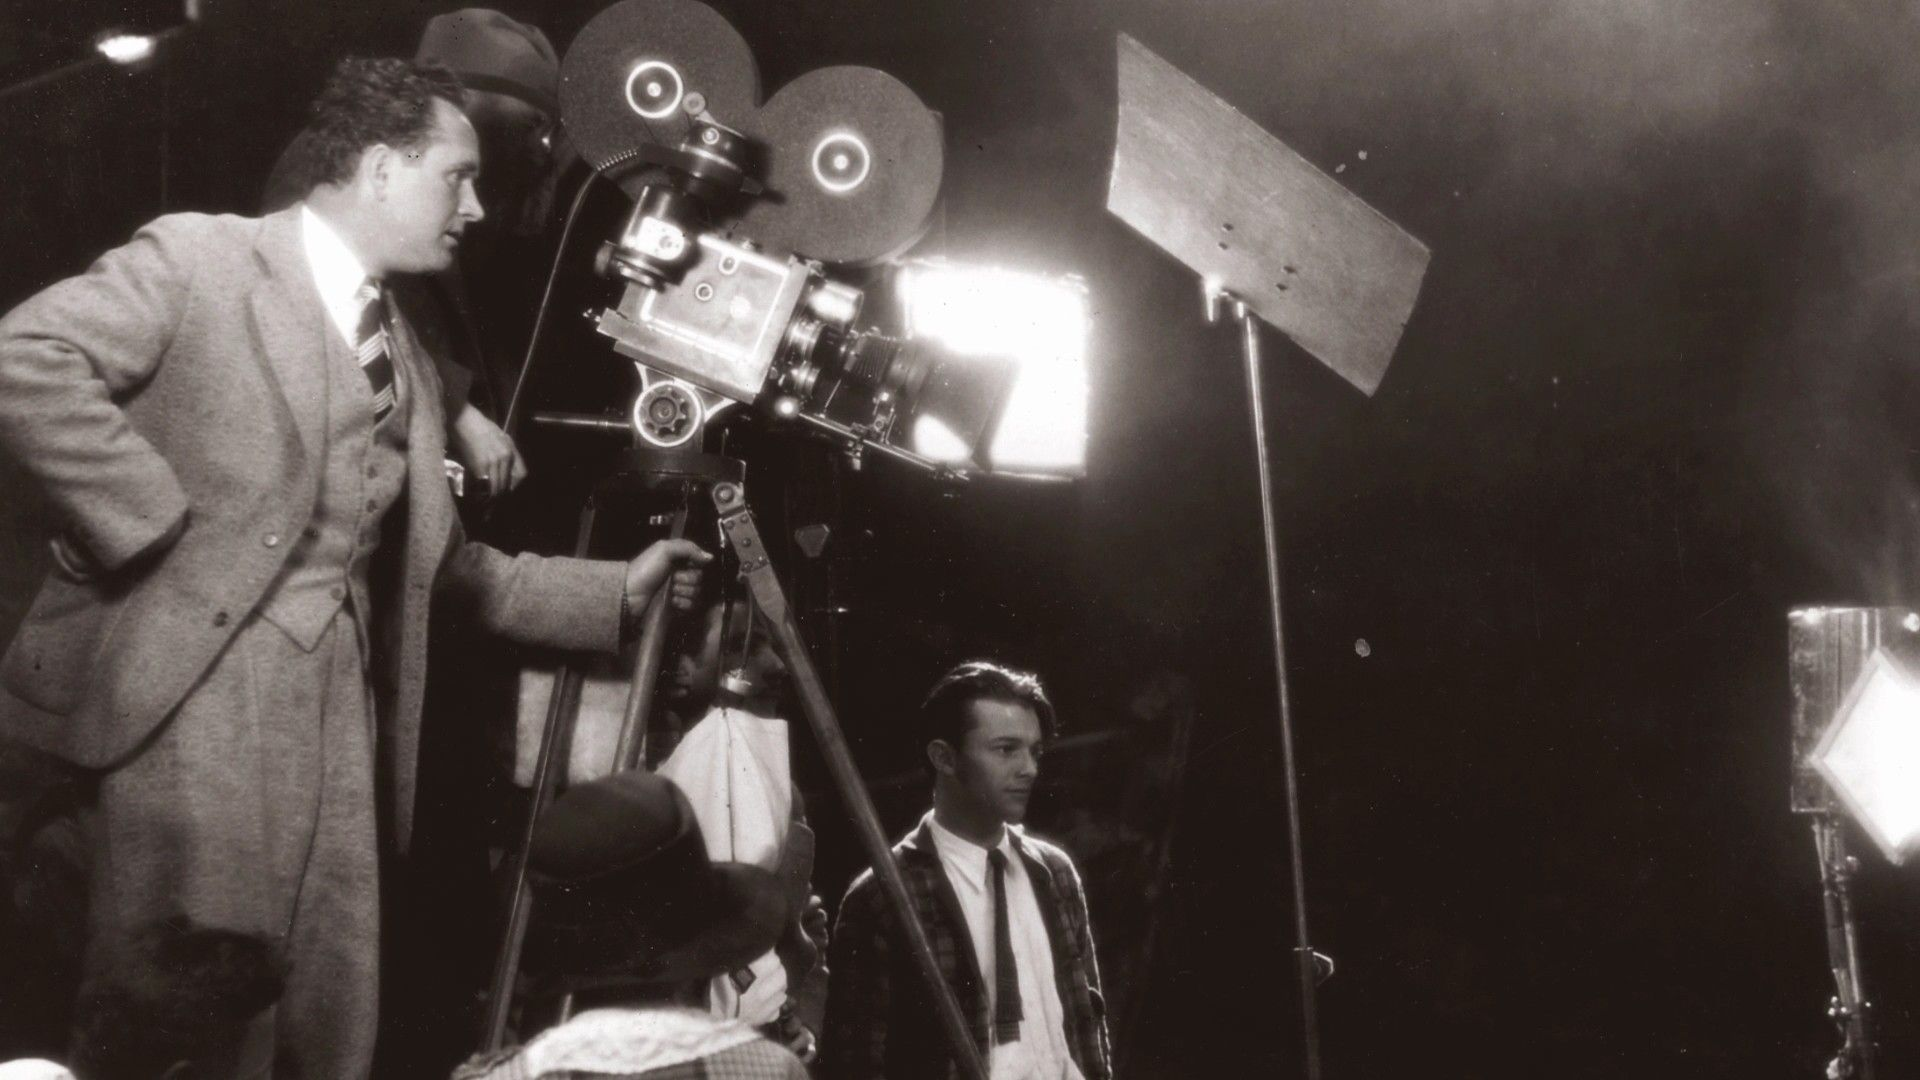 Director Frank Borzage on the set of Lucky Star, 1929